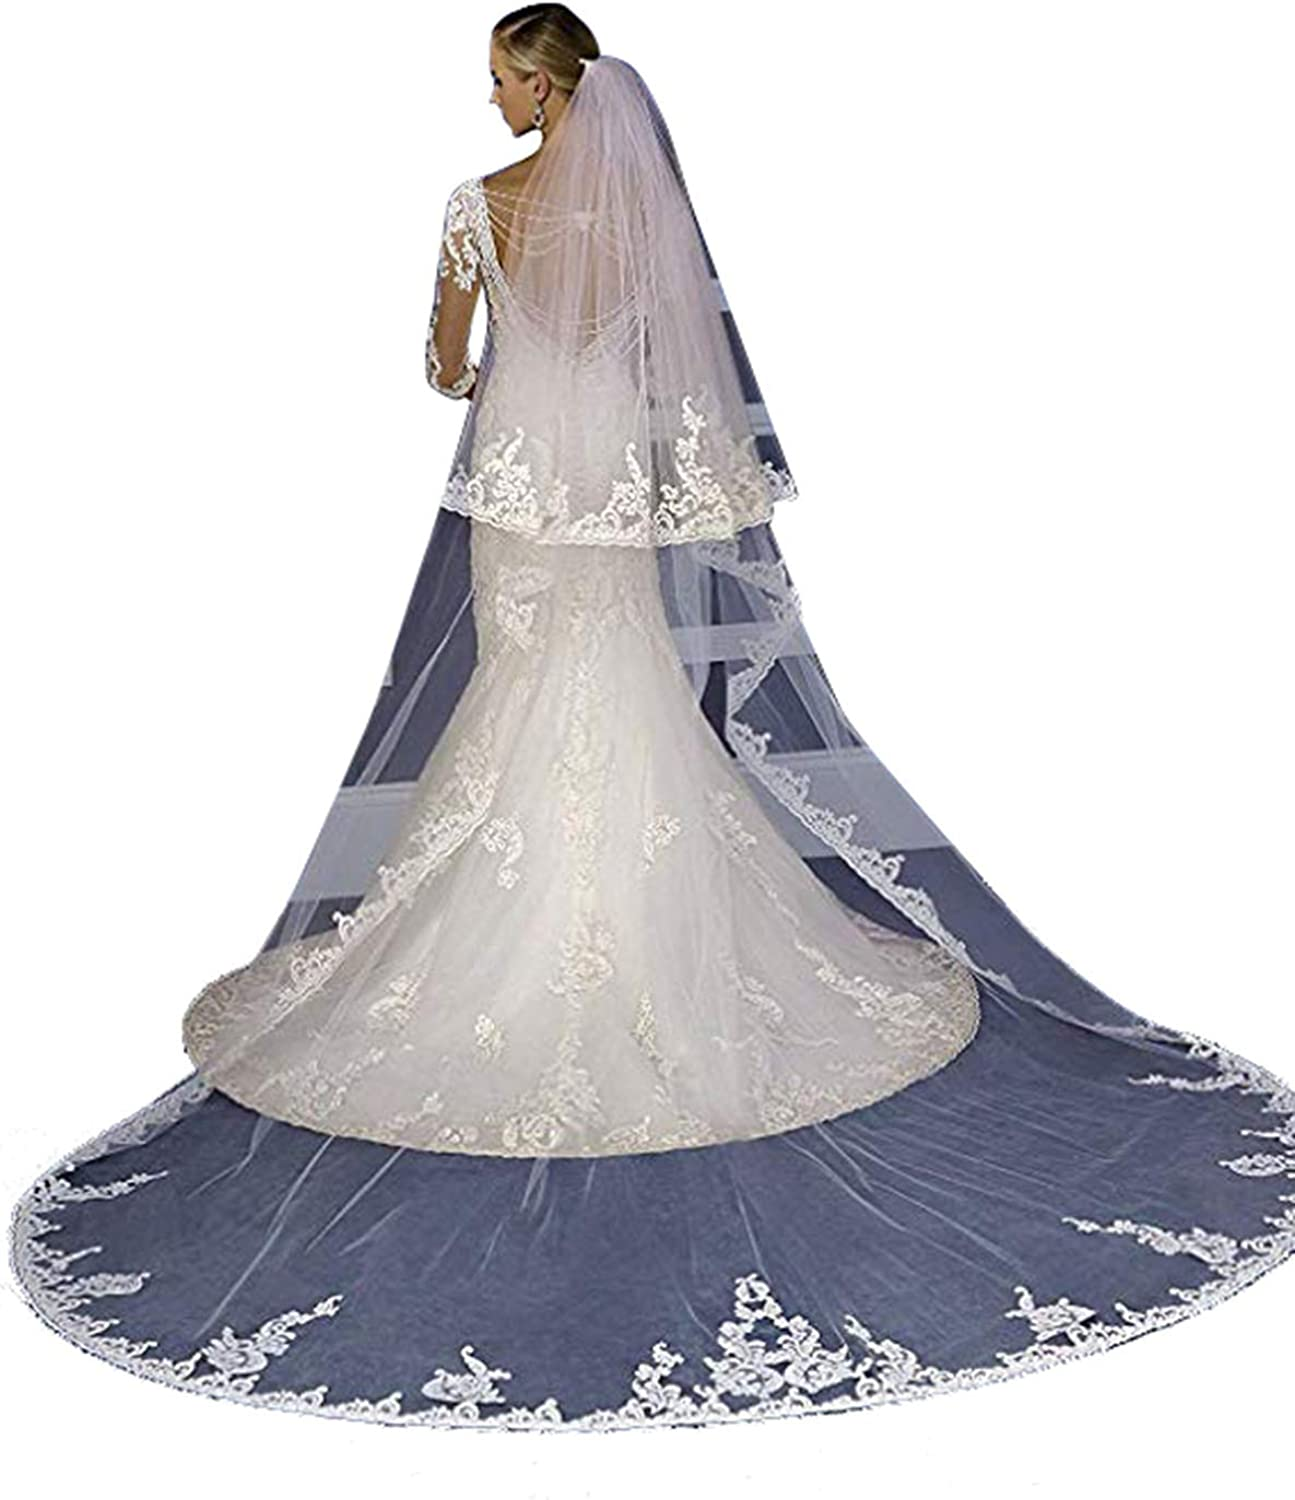 New Bridal Veil 3 M 4M Cathedral Wedding Veils 2T White Lace Edge With Comb